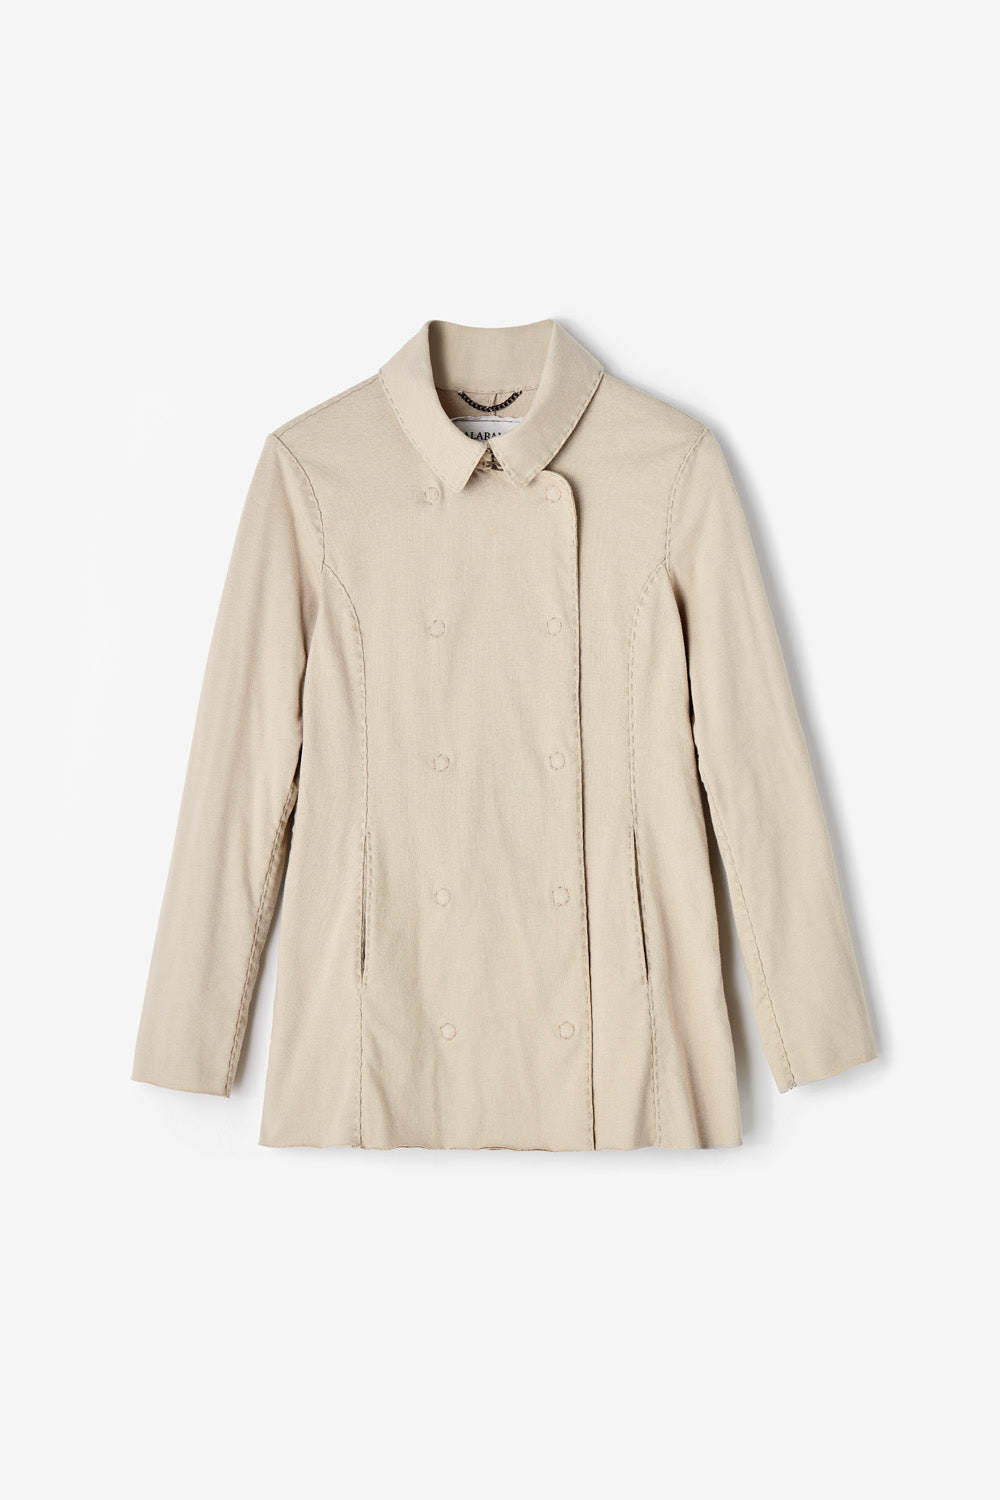 Alabama Chanin The Peacoat in Organic Medium-Weight Jersey Cotton with Pockets in Wax